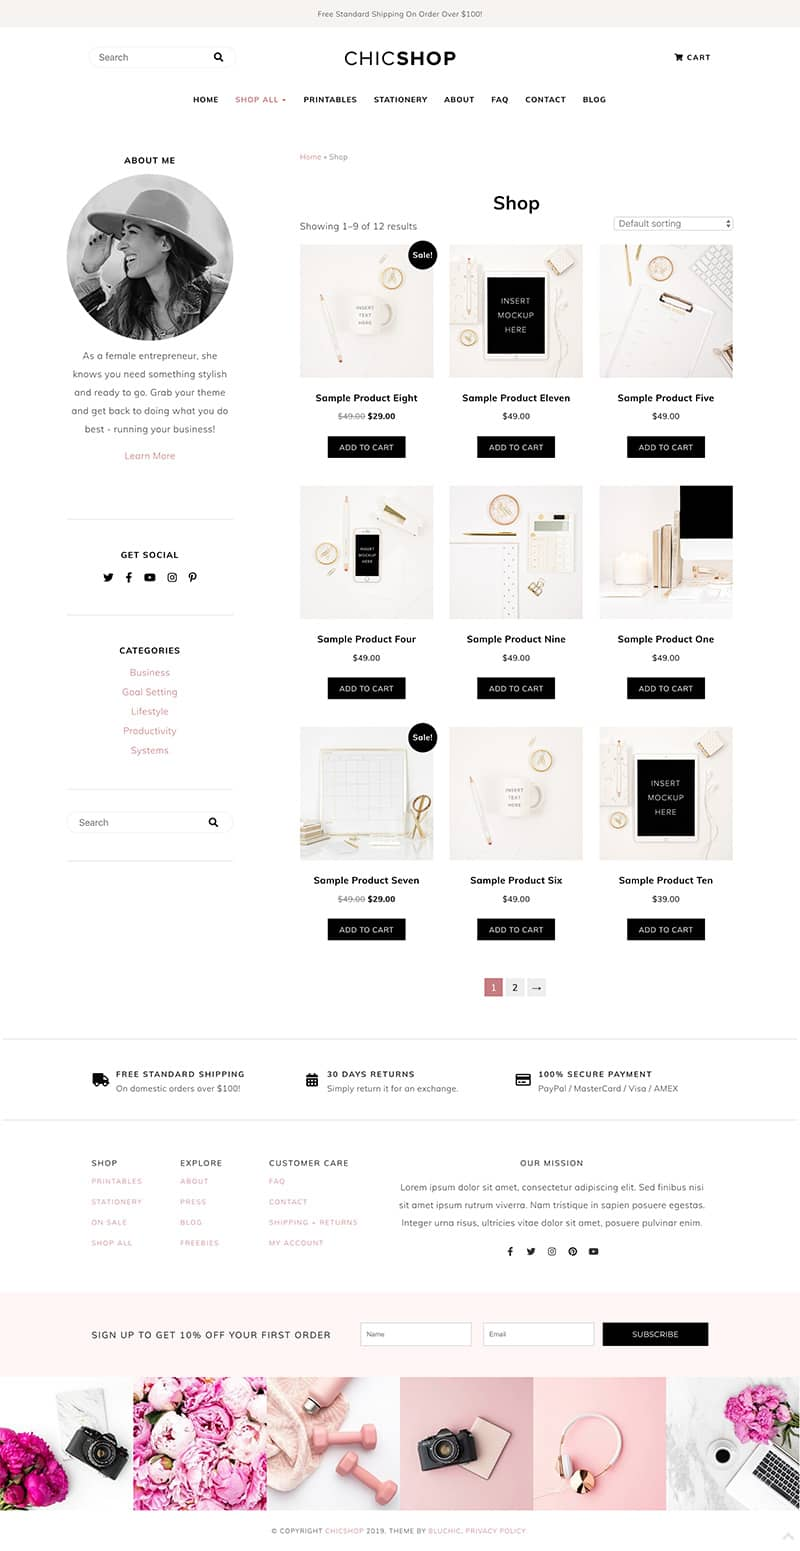 ChicShop shop page with sidebar content layout